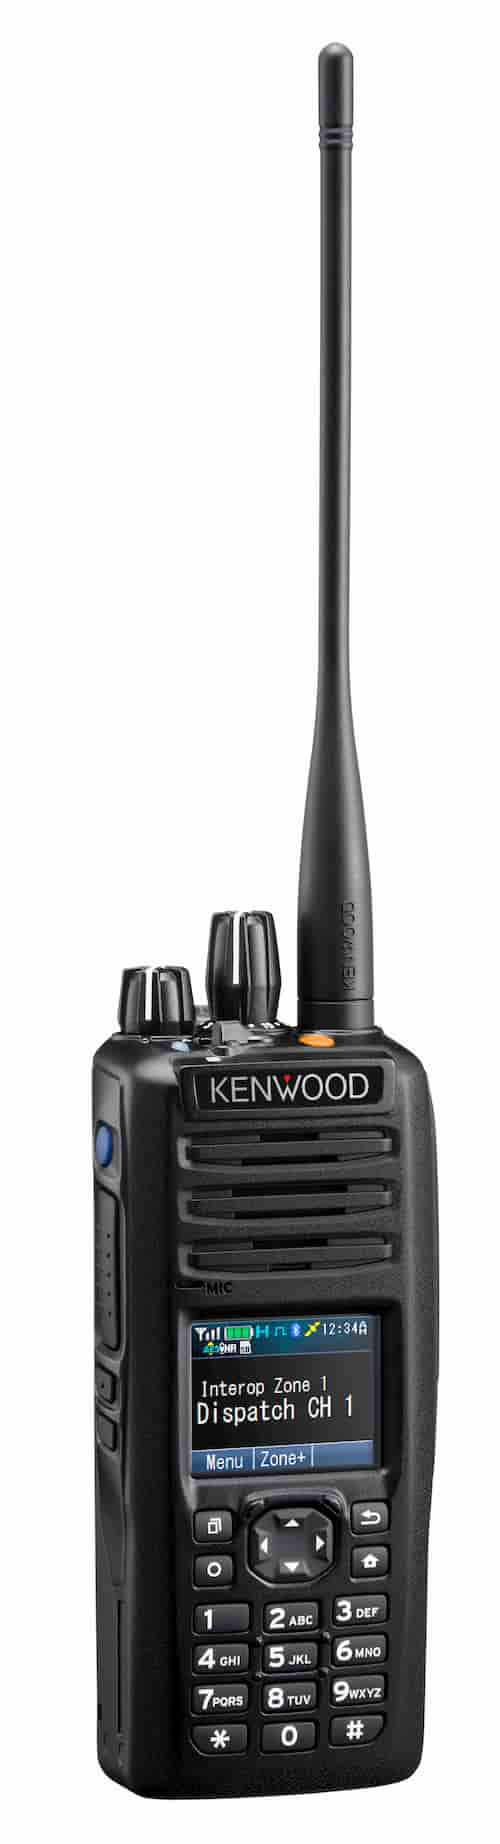 Kenwood NX5000 series radio in black